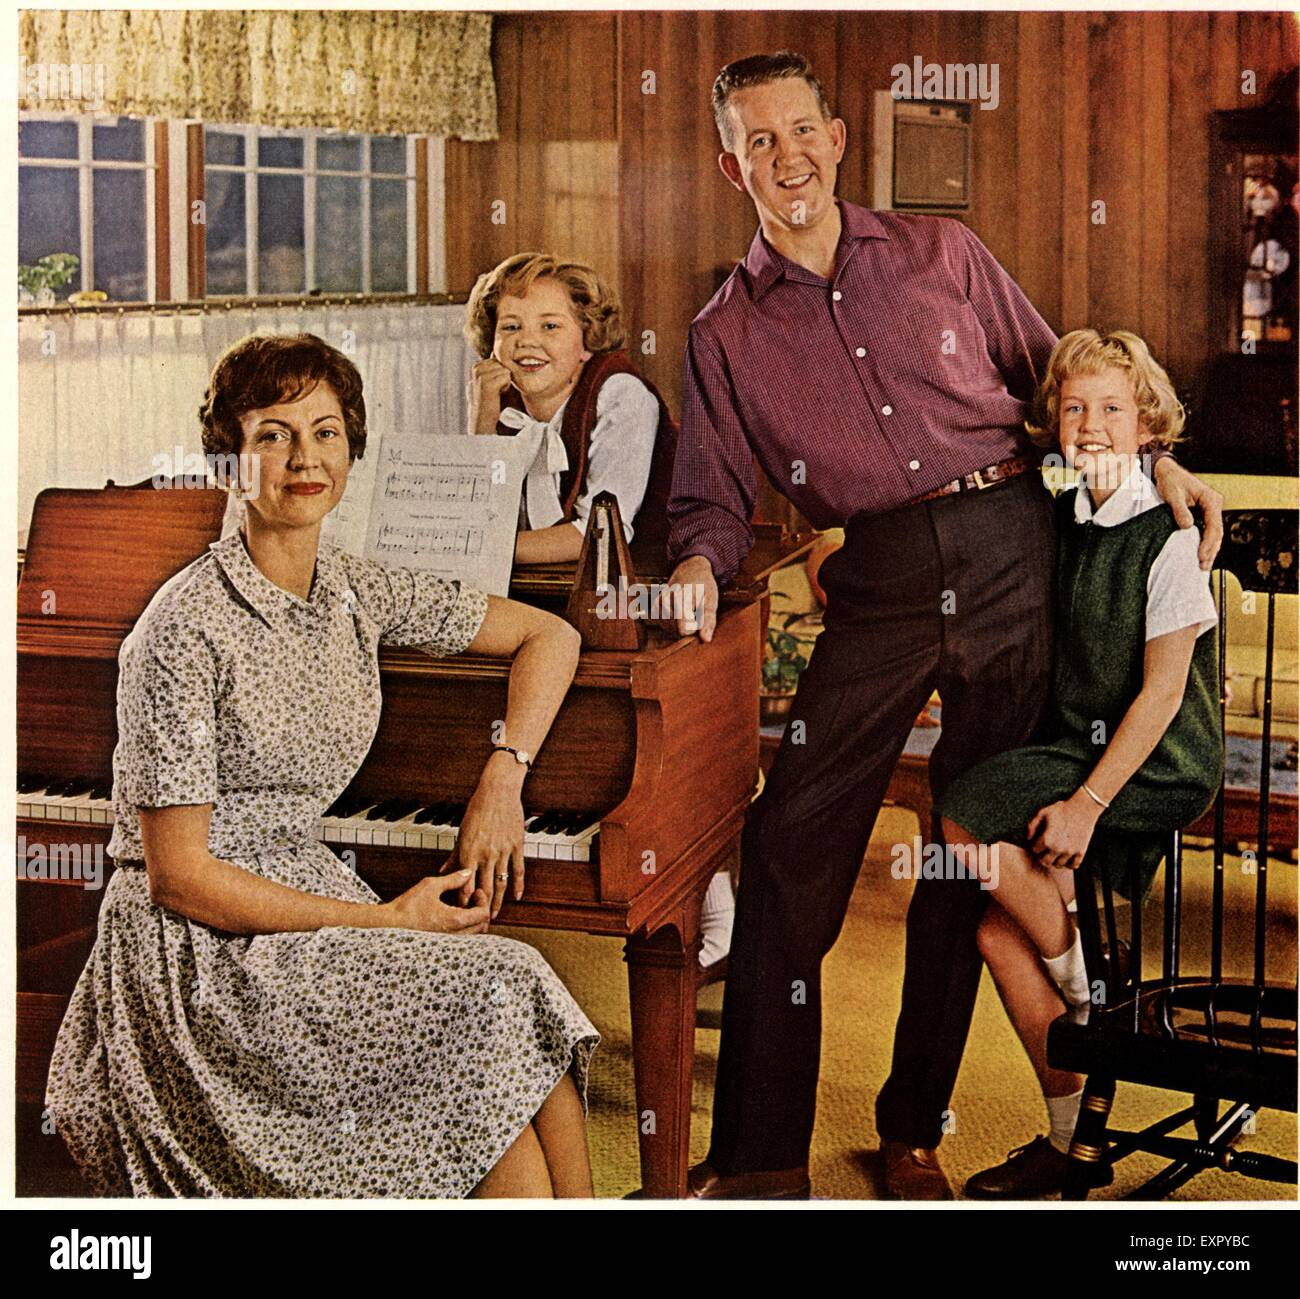 1960s USA Family Portraits Magazine Advert (detail) - Stock Image